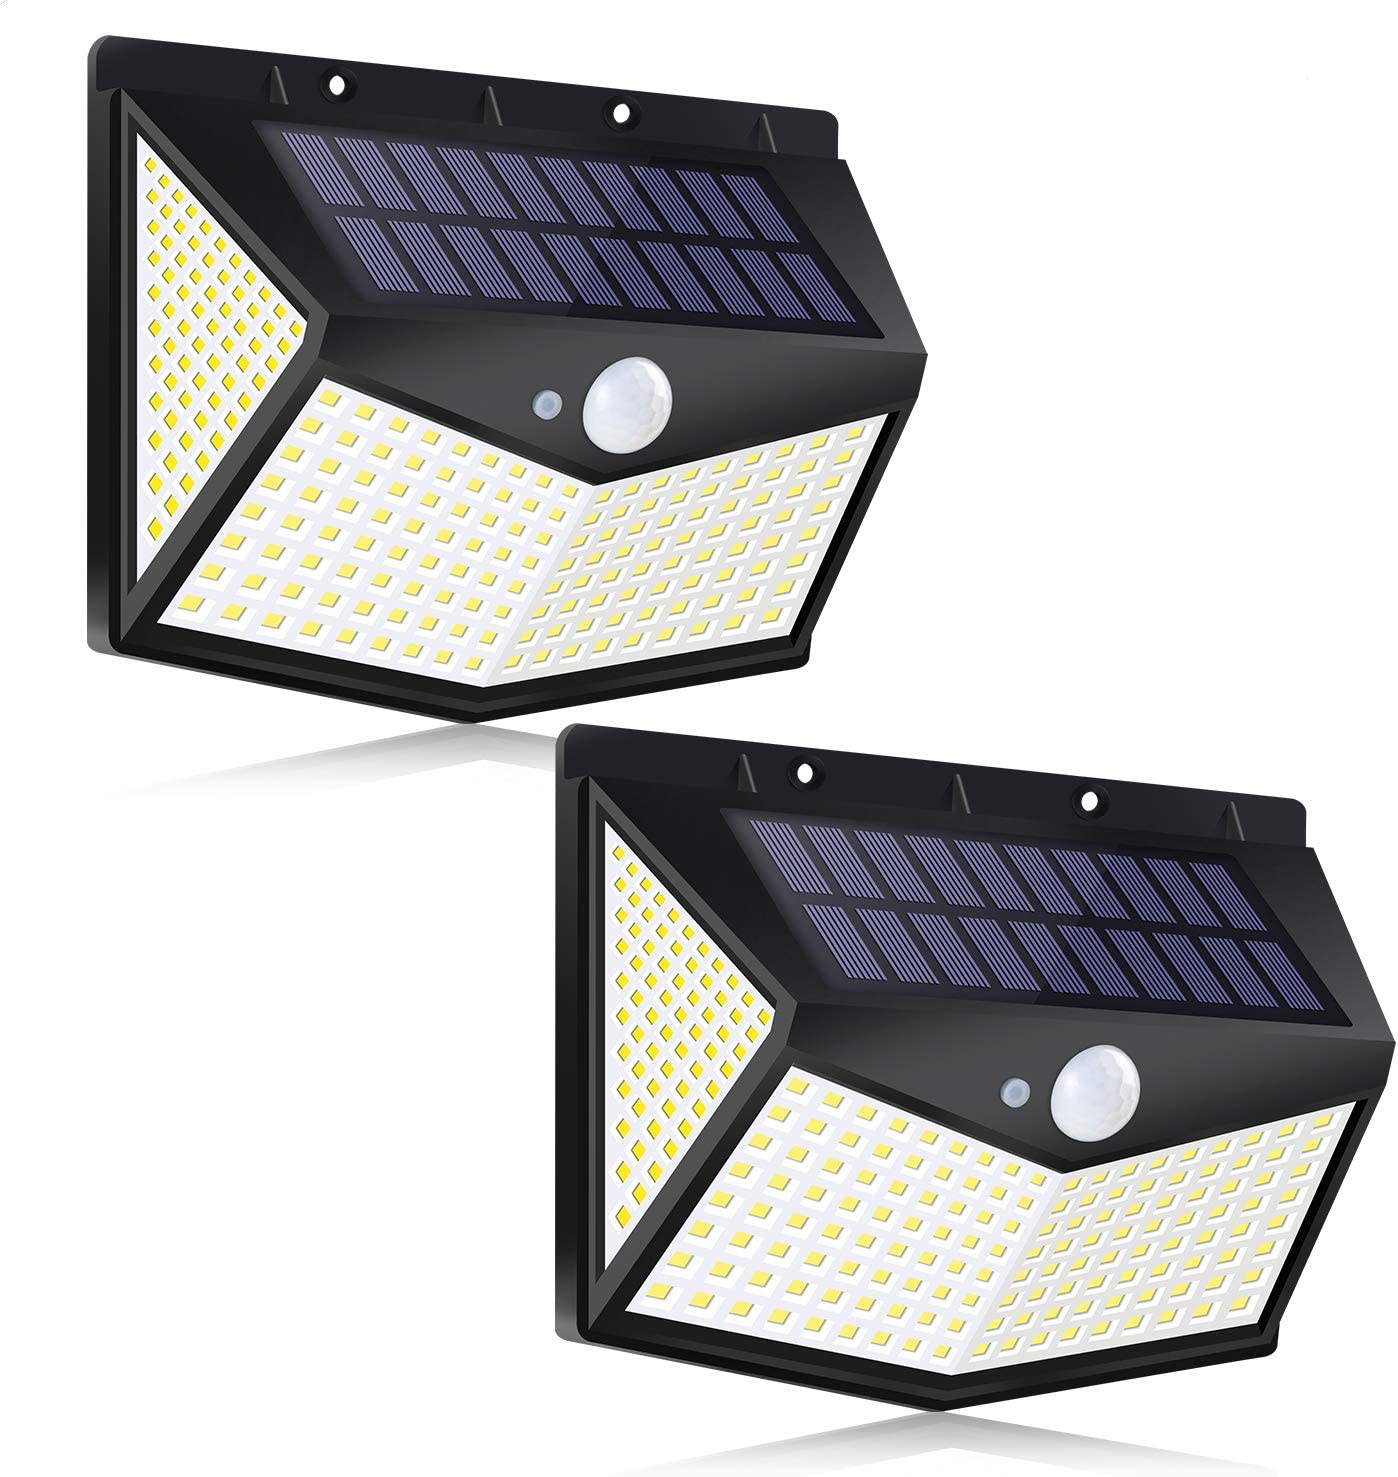 Leehby 212LED 2-Pack Outdoor Solar Wall Lights $14.99 Coupon